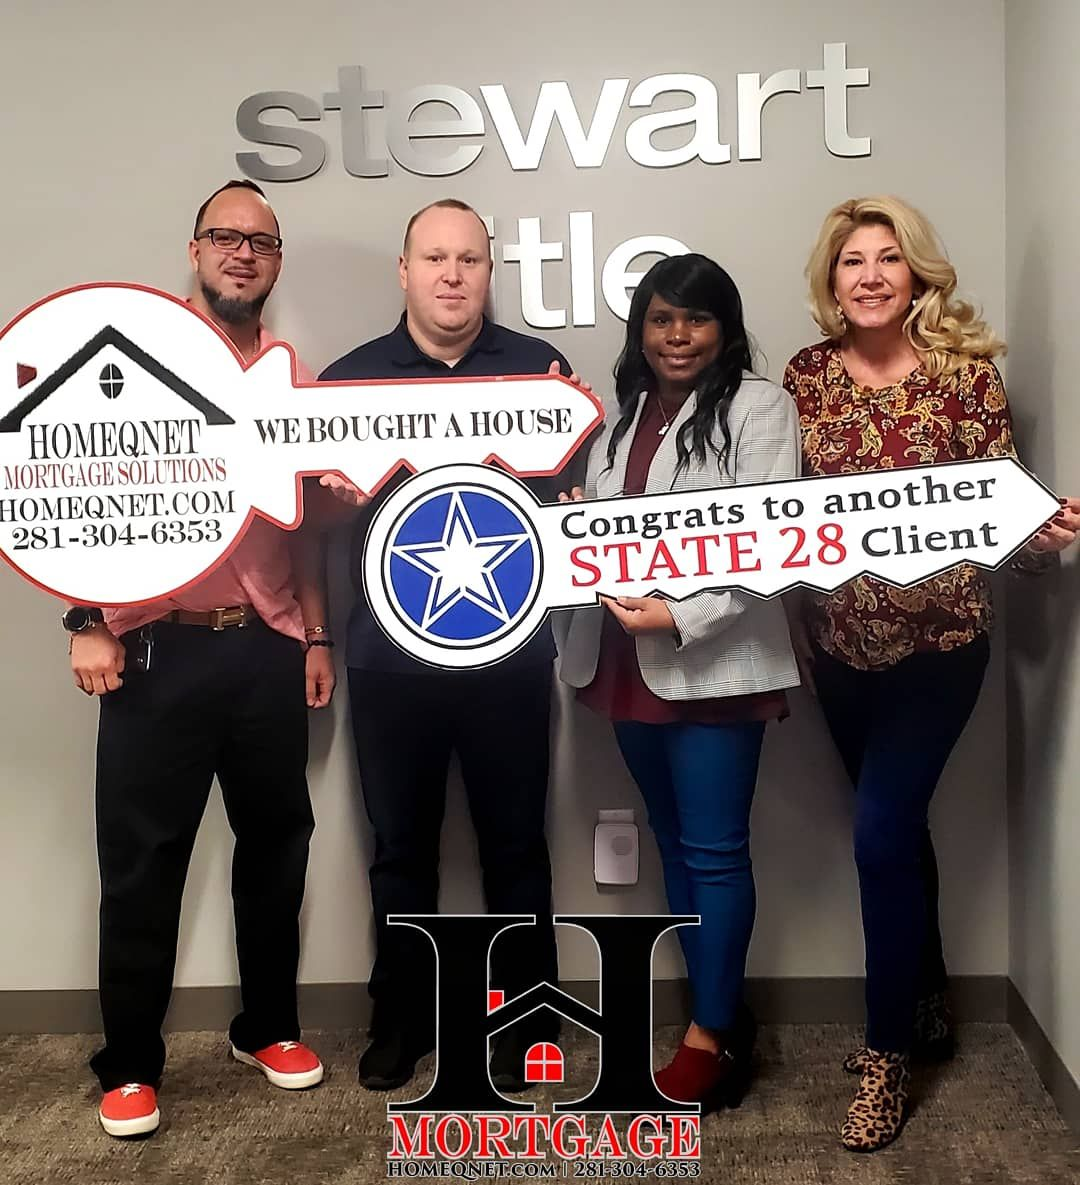 Congratulations to Mr. & Mrs. Sutton on their home